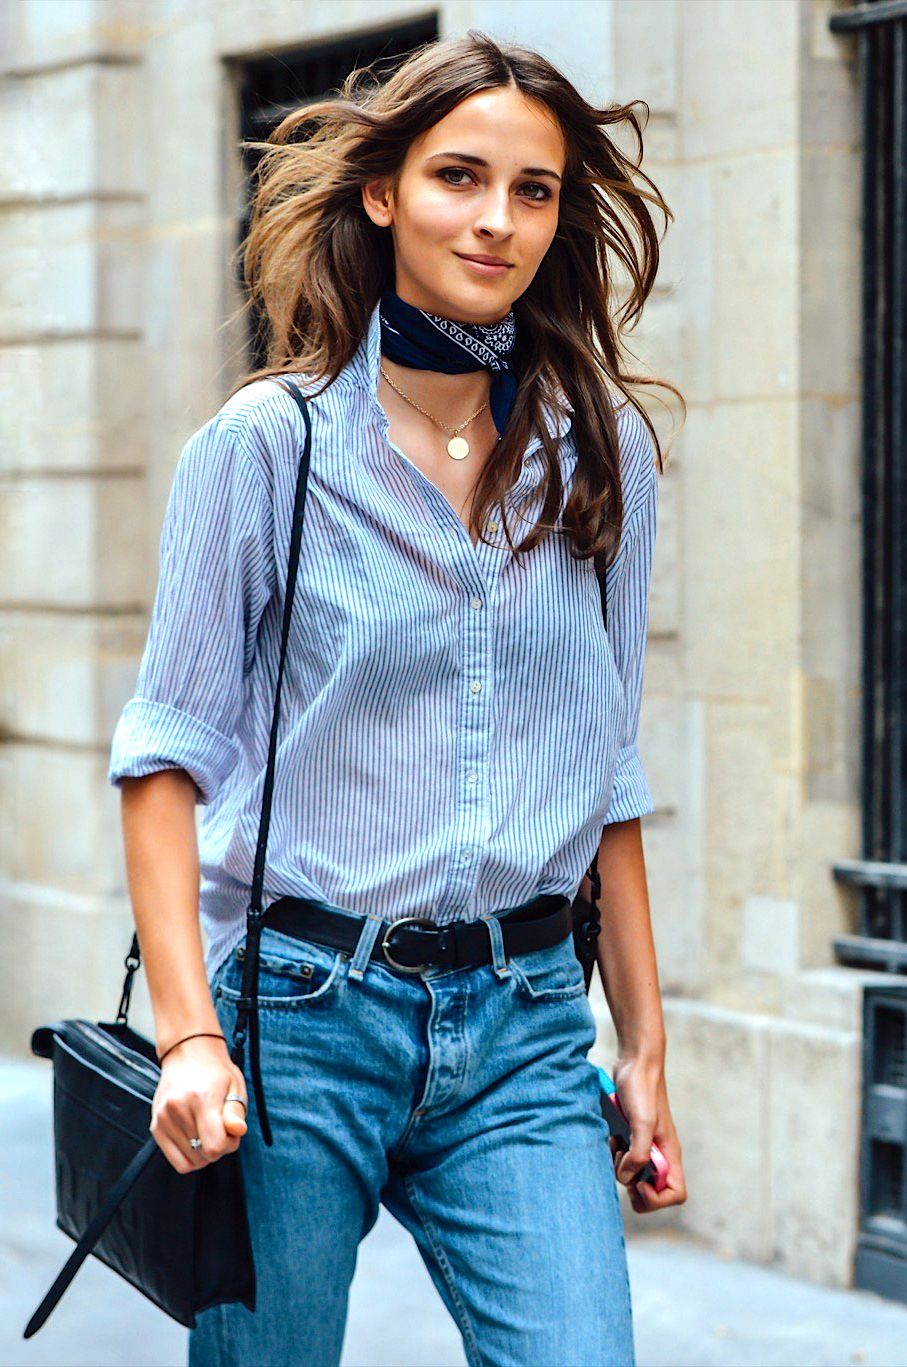 15 Street-Style-Approved Ways to Wear Your Hair with Hats ThisSummer 15 Street-Style-Approved Ways to Wear Your Hair with Hats ThisSummer new pictures